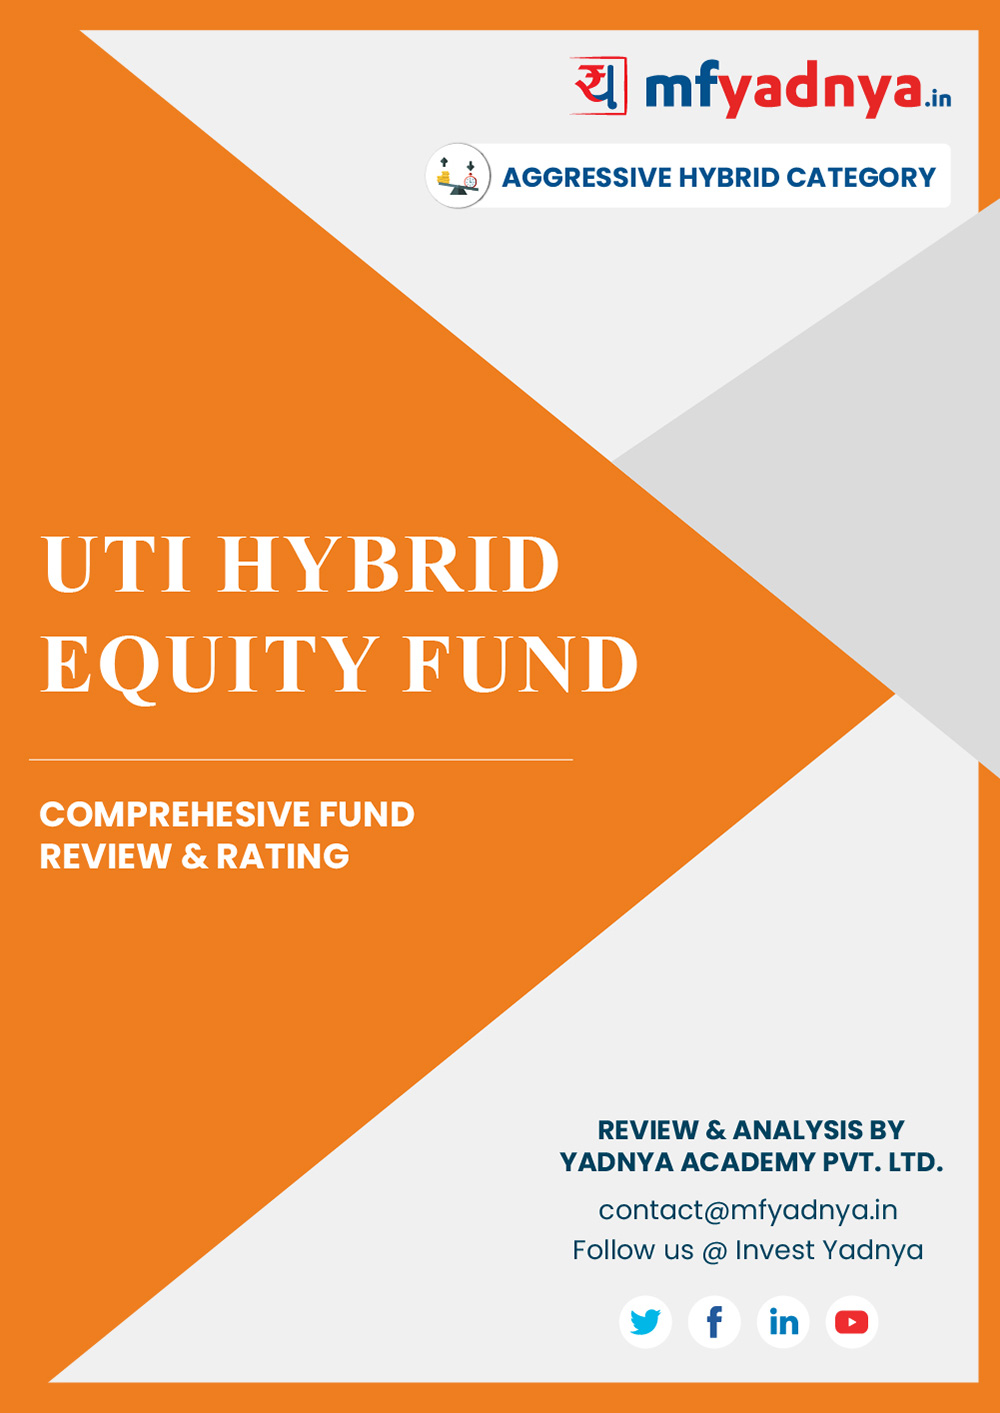 This e-book offers a comprehensive mutual fund review of UTI Equity Advantage Fund for the hybrid category. It reviews the fund's return, ratio, allocation etc. ✔ Detailed Mutual Fund Analysis ✔ Latest Research Reports